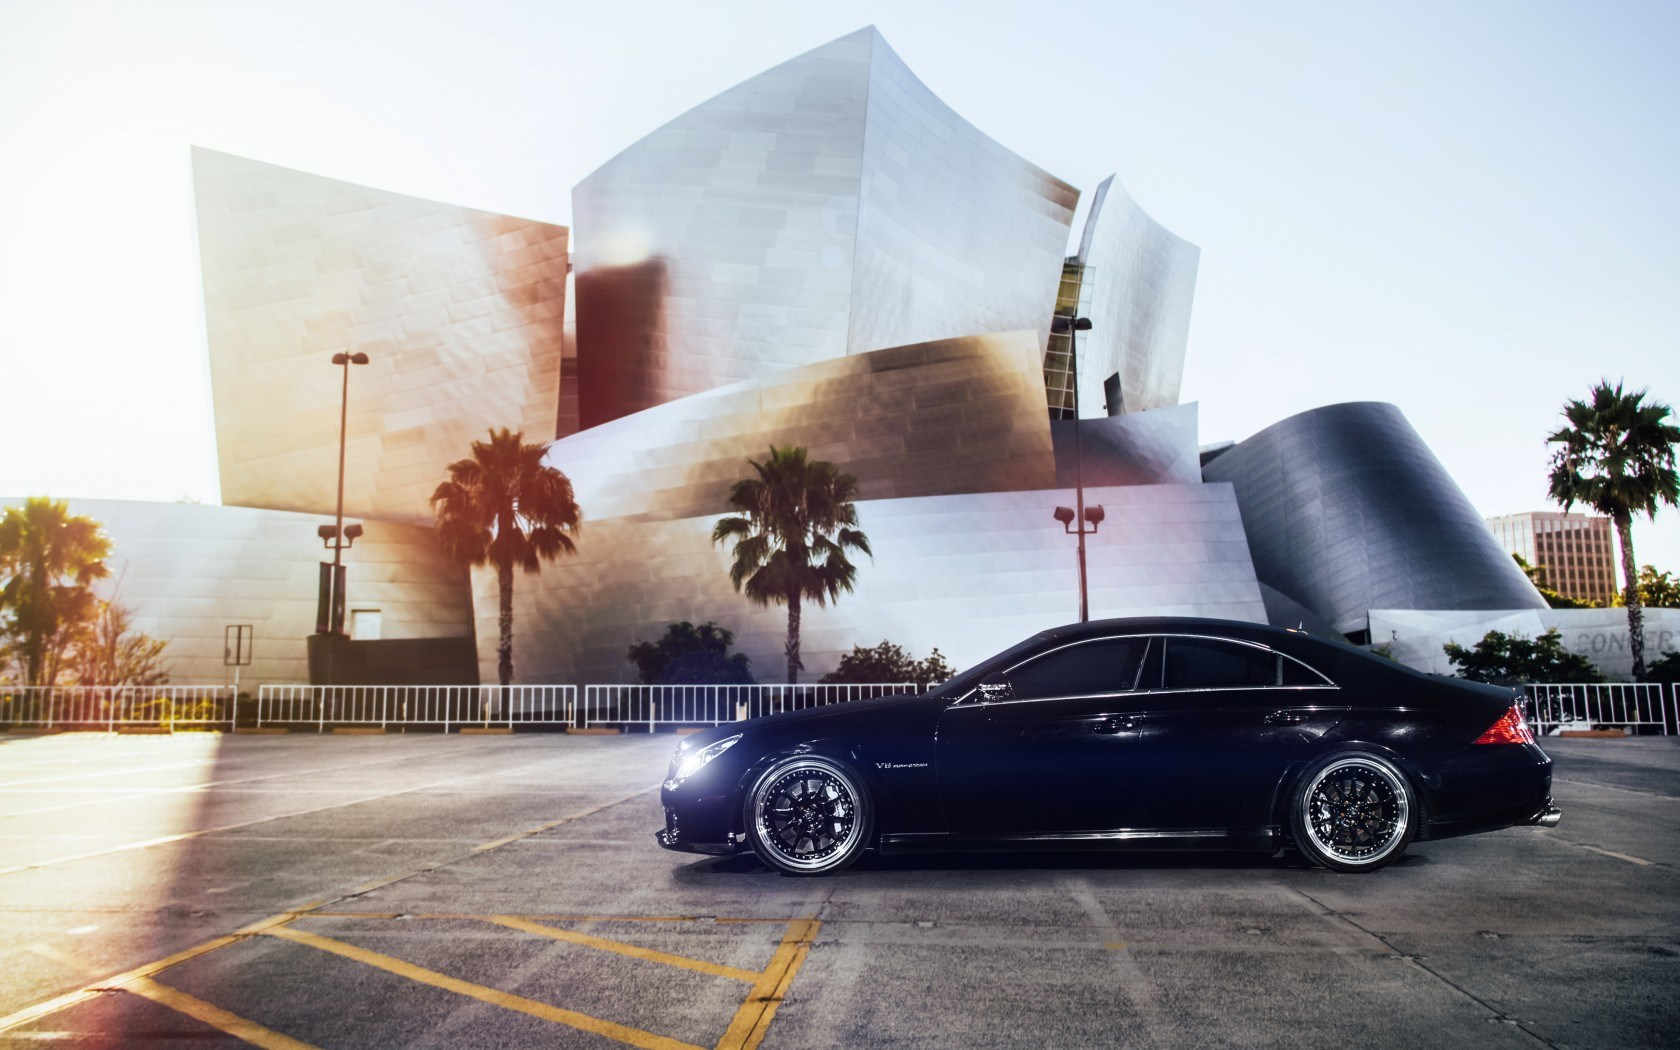 Mercedes-Benz CLS 55 AMG Tuning Car